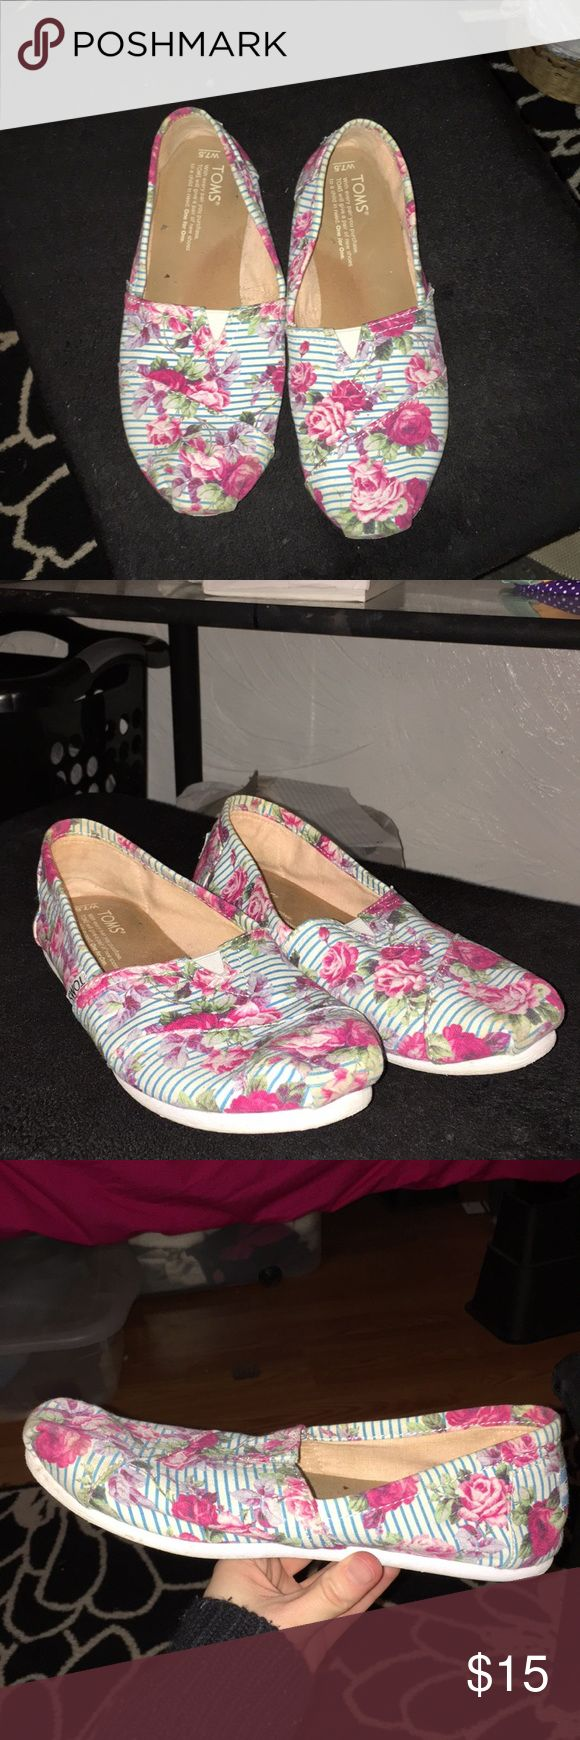 Floral toms Fun floral patterned toms   So perfect for a spring outfit   Worn quite a bit but haven't been touched in a year and a half Toms Shoes Flats & Loafers